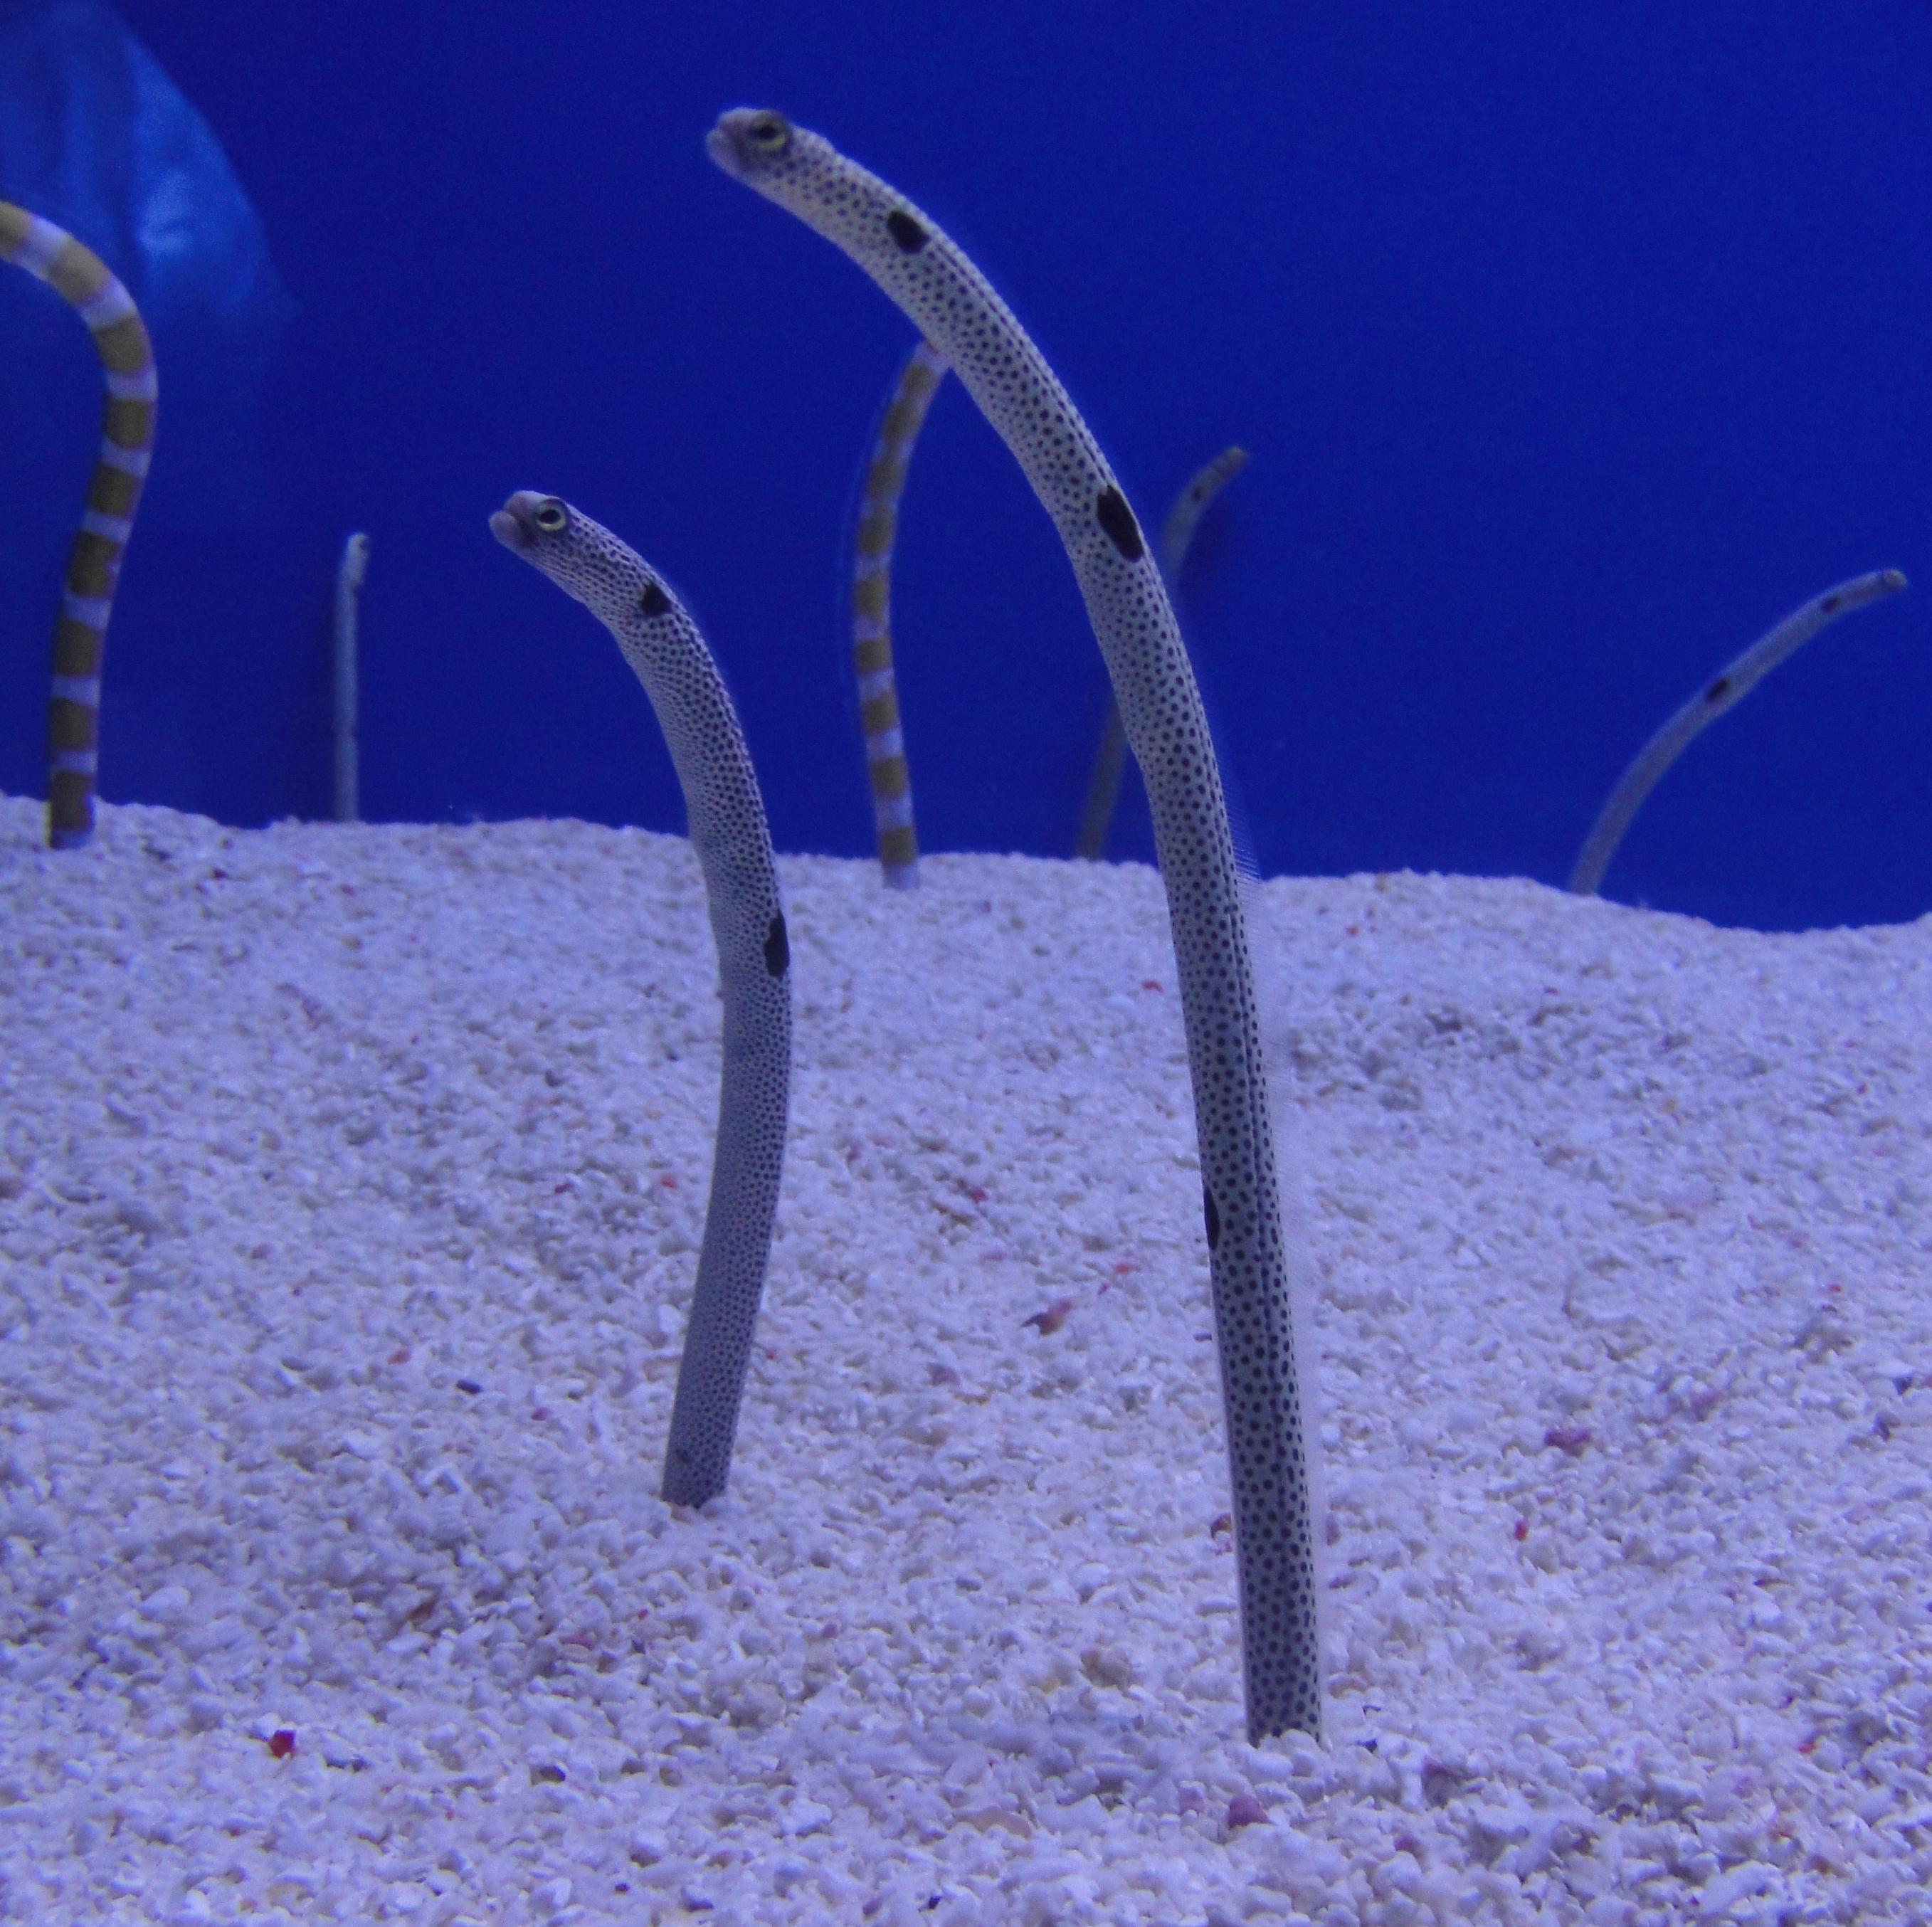 Garden eel wallpaper